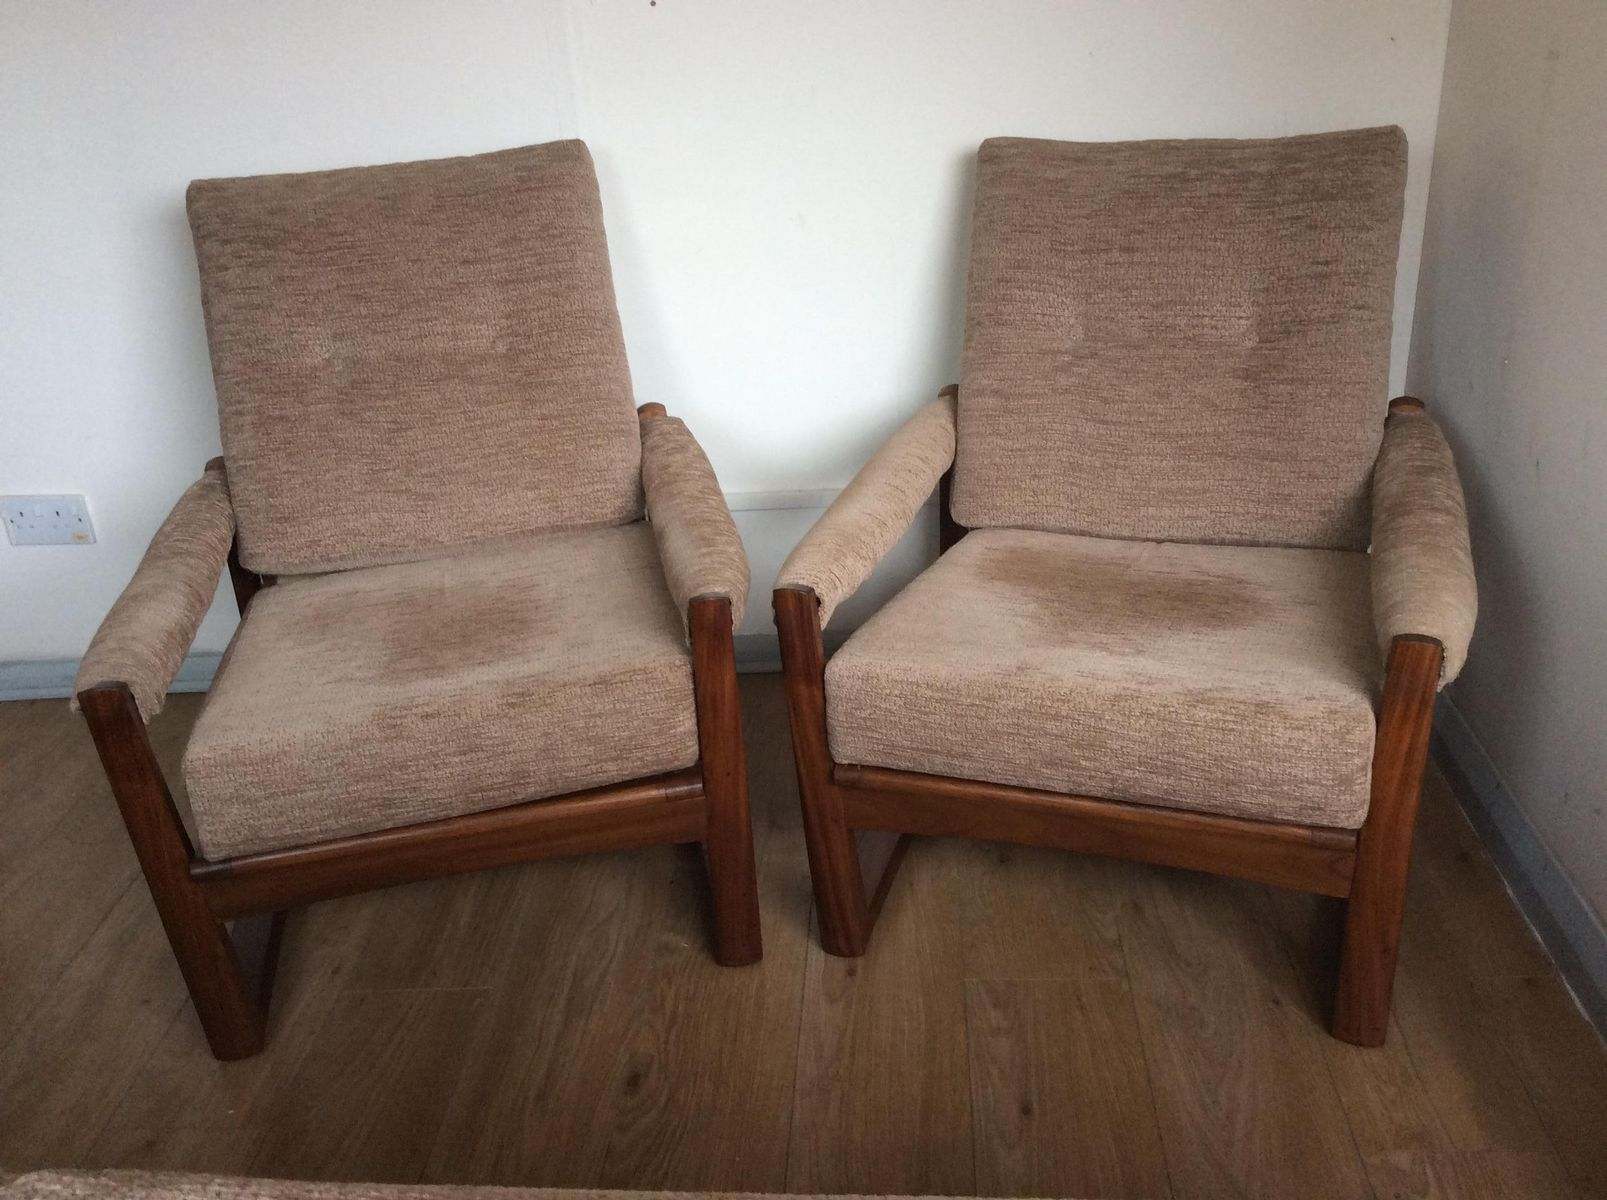 Afromosia & Teak Virginia Armchairs by Guy Rogers 1960s Set of 2